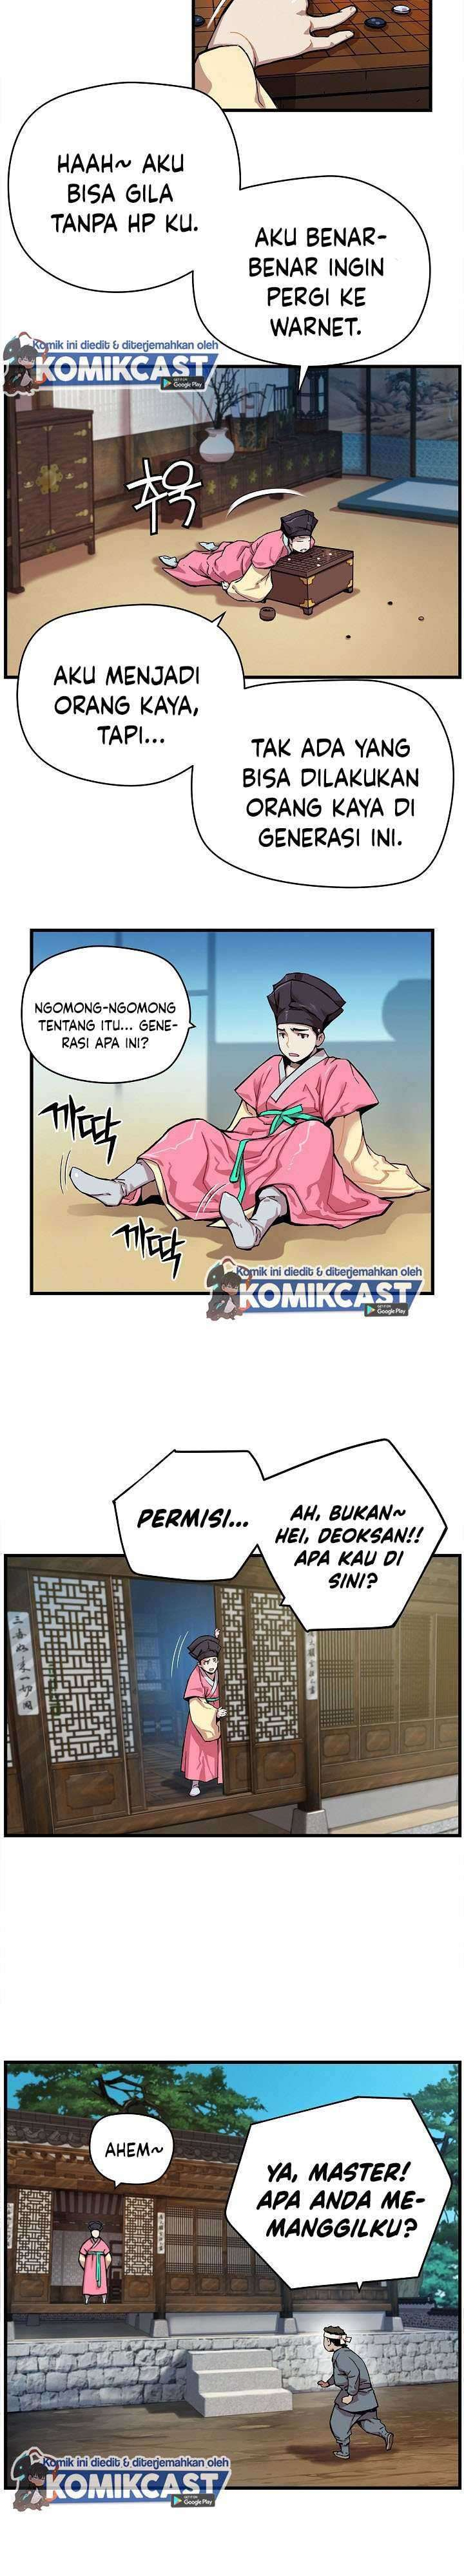 I Shall Live As a Prince Chapter 01 Bahasa Indonesia page 33